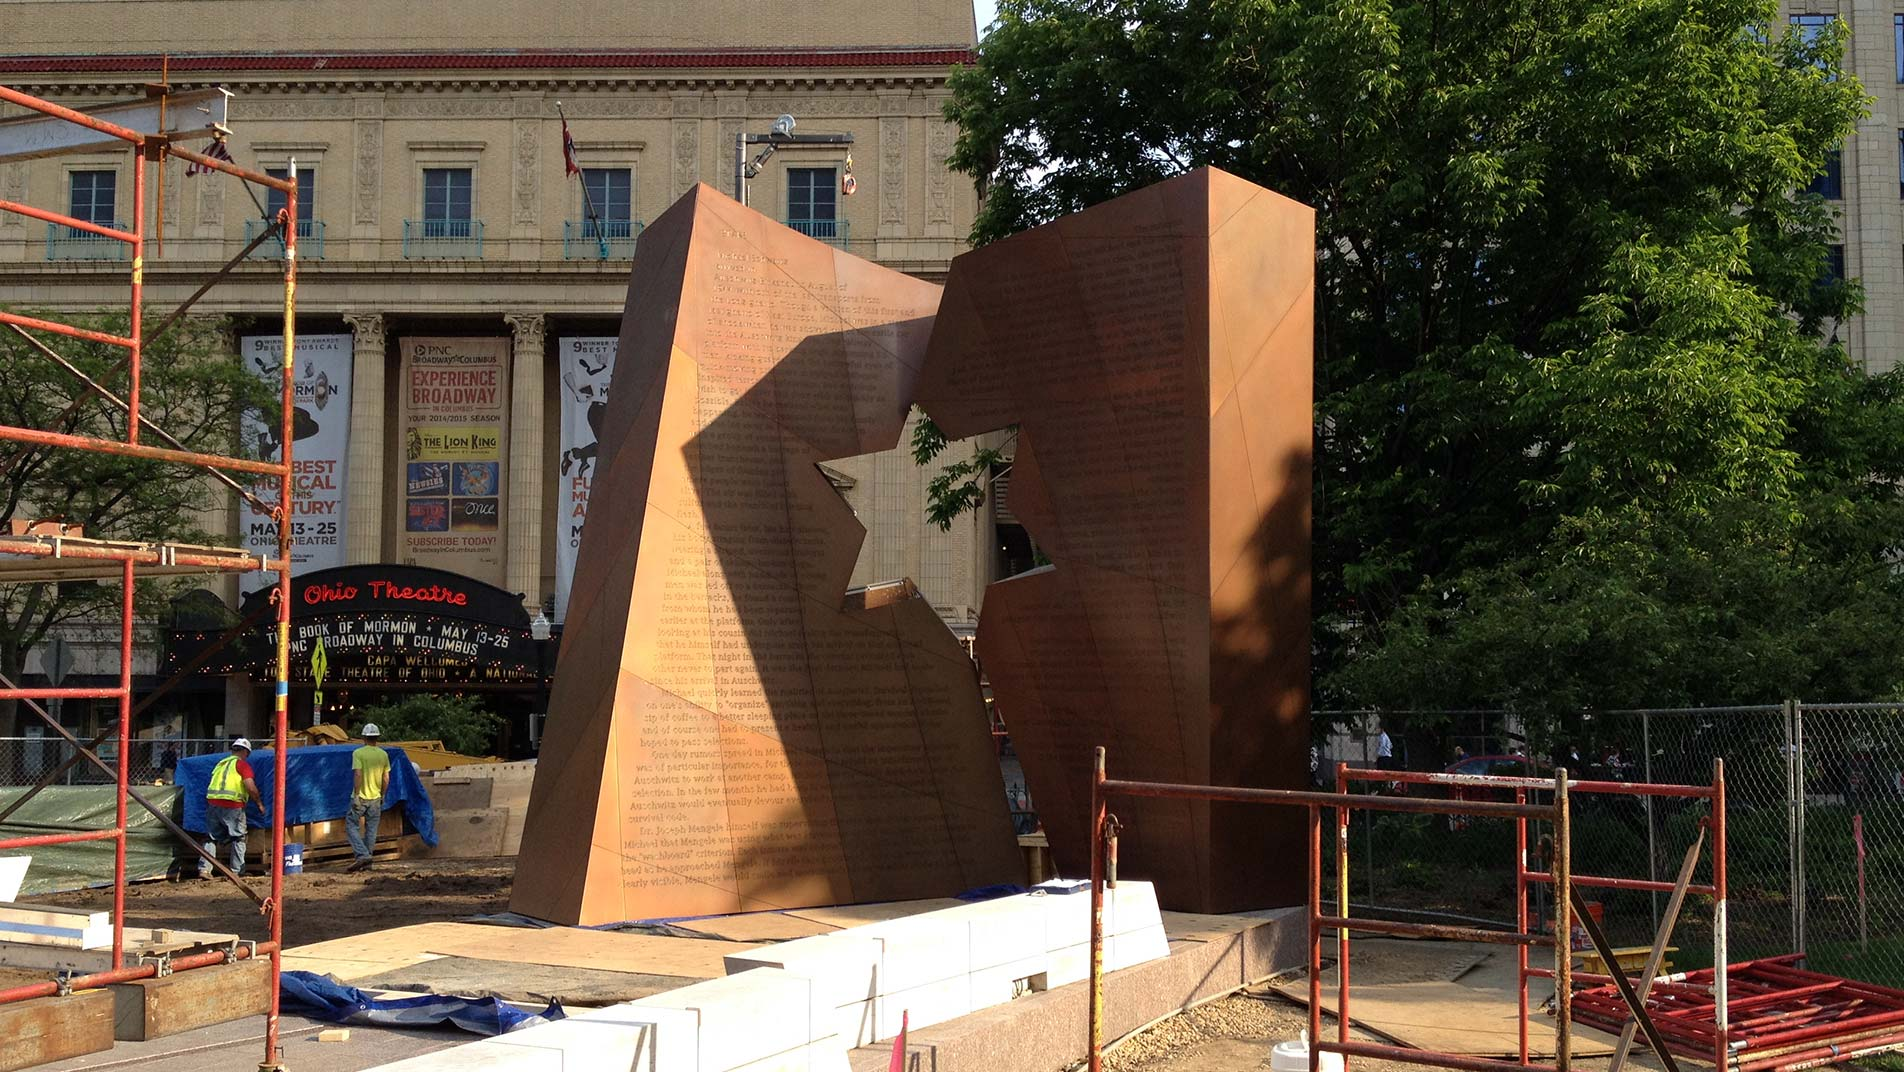 The memorial nears completion at the Ohio Statehouse